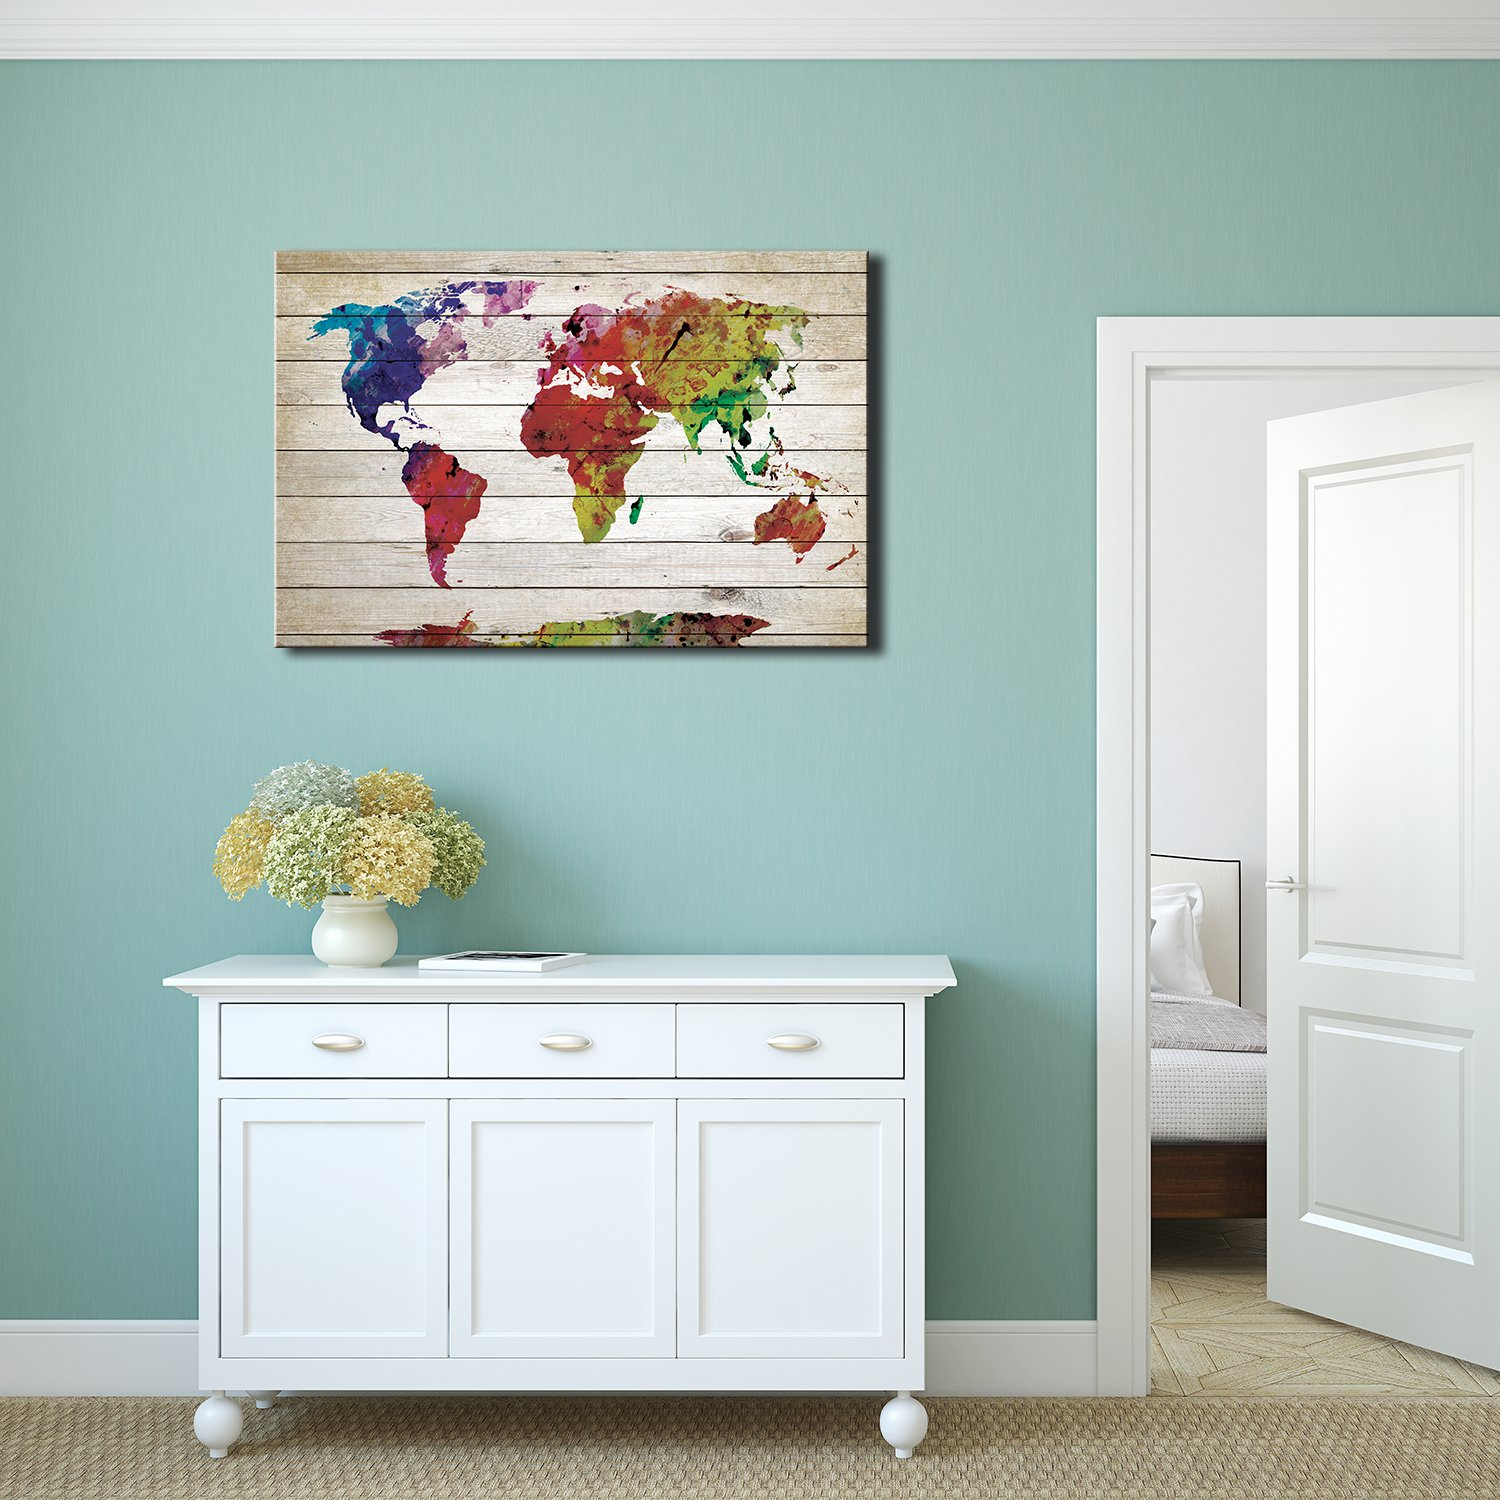 Wall26 Watercolor Fine Art World Map Rustic Wood Panel Painting